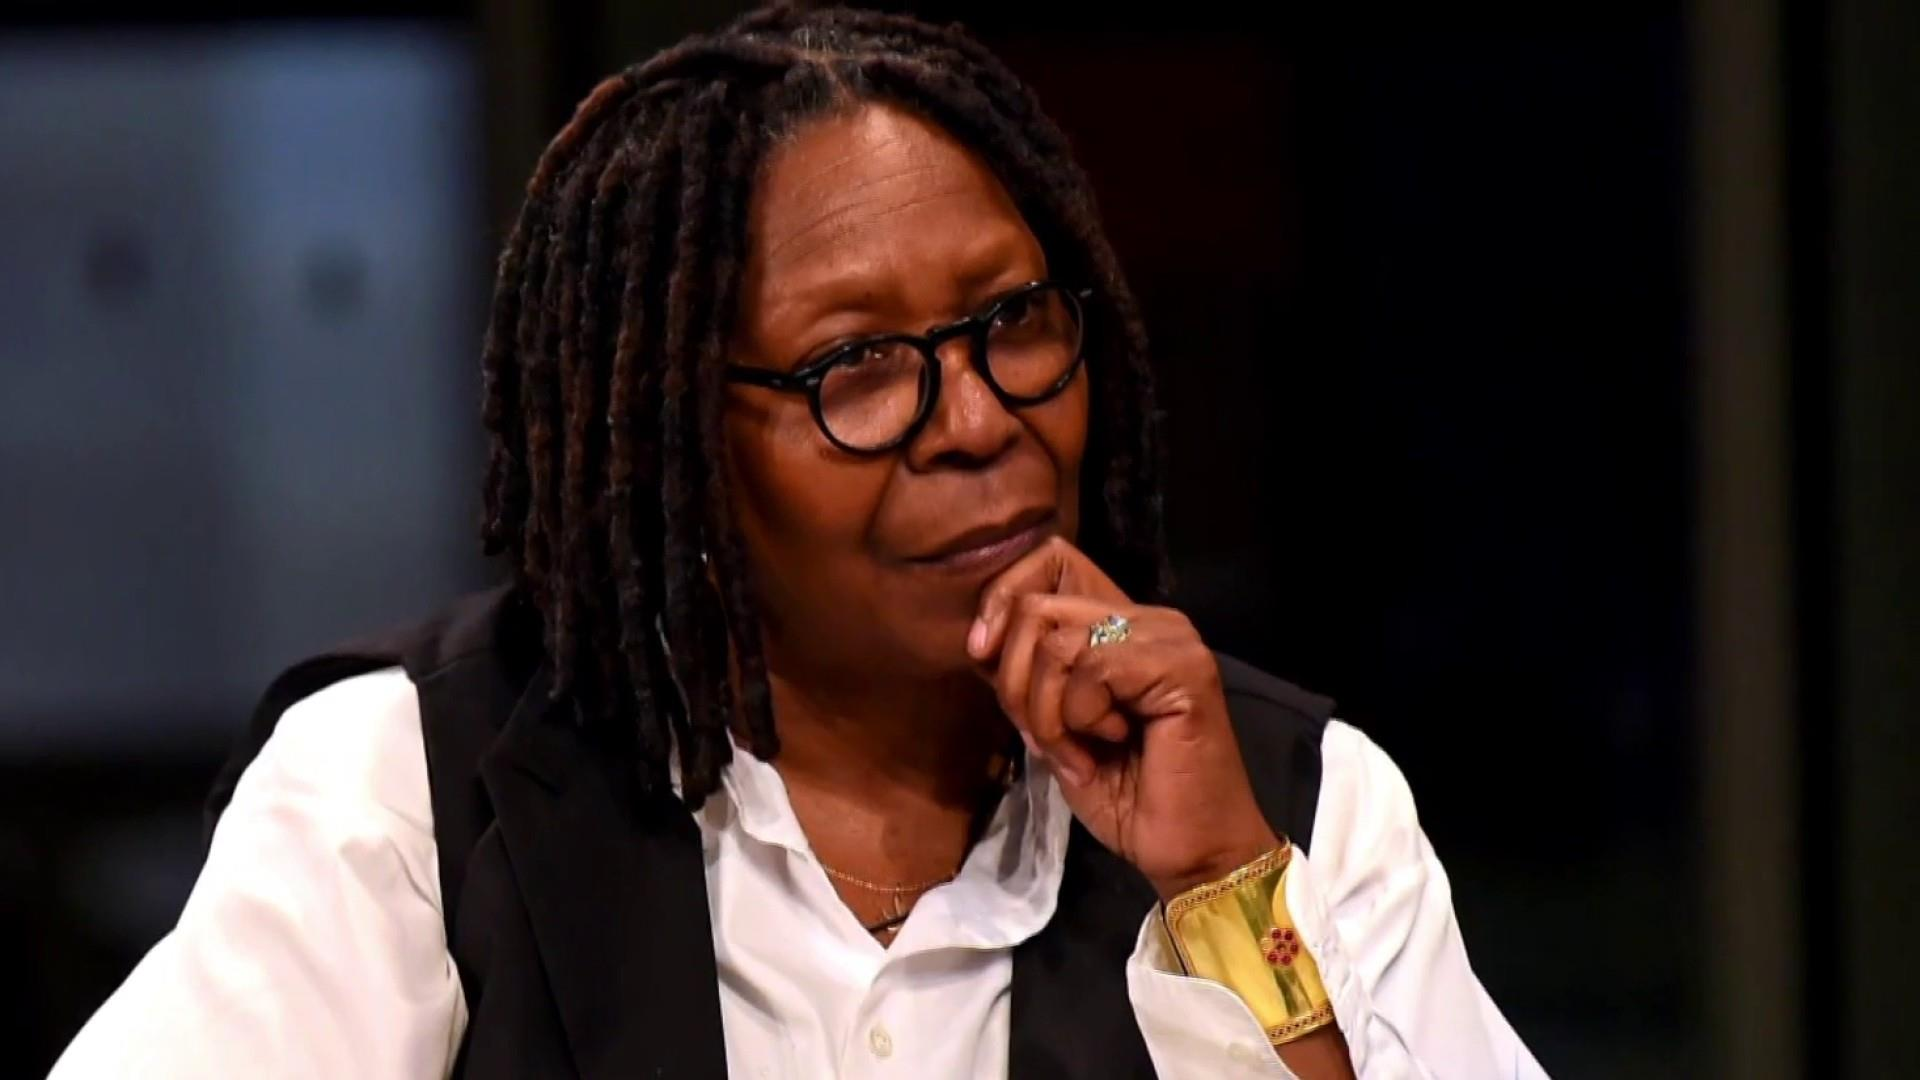 Whoopi Goldberg makes surprise visit to The View after severe pneumonia battle